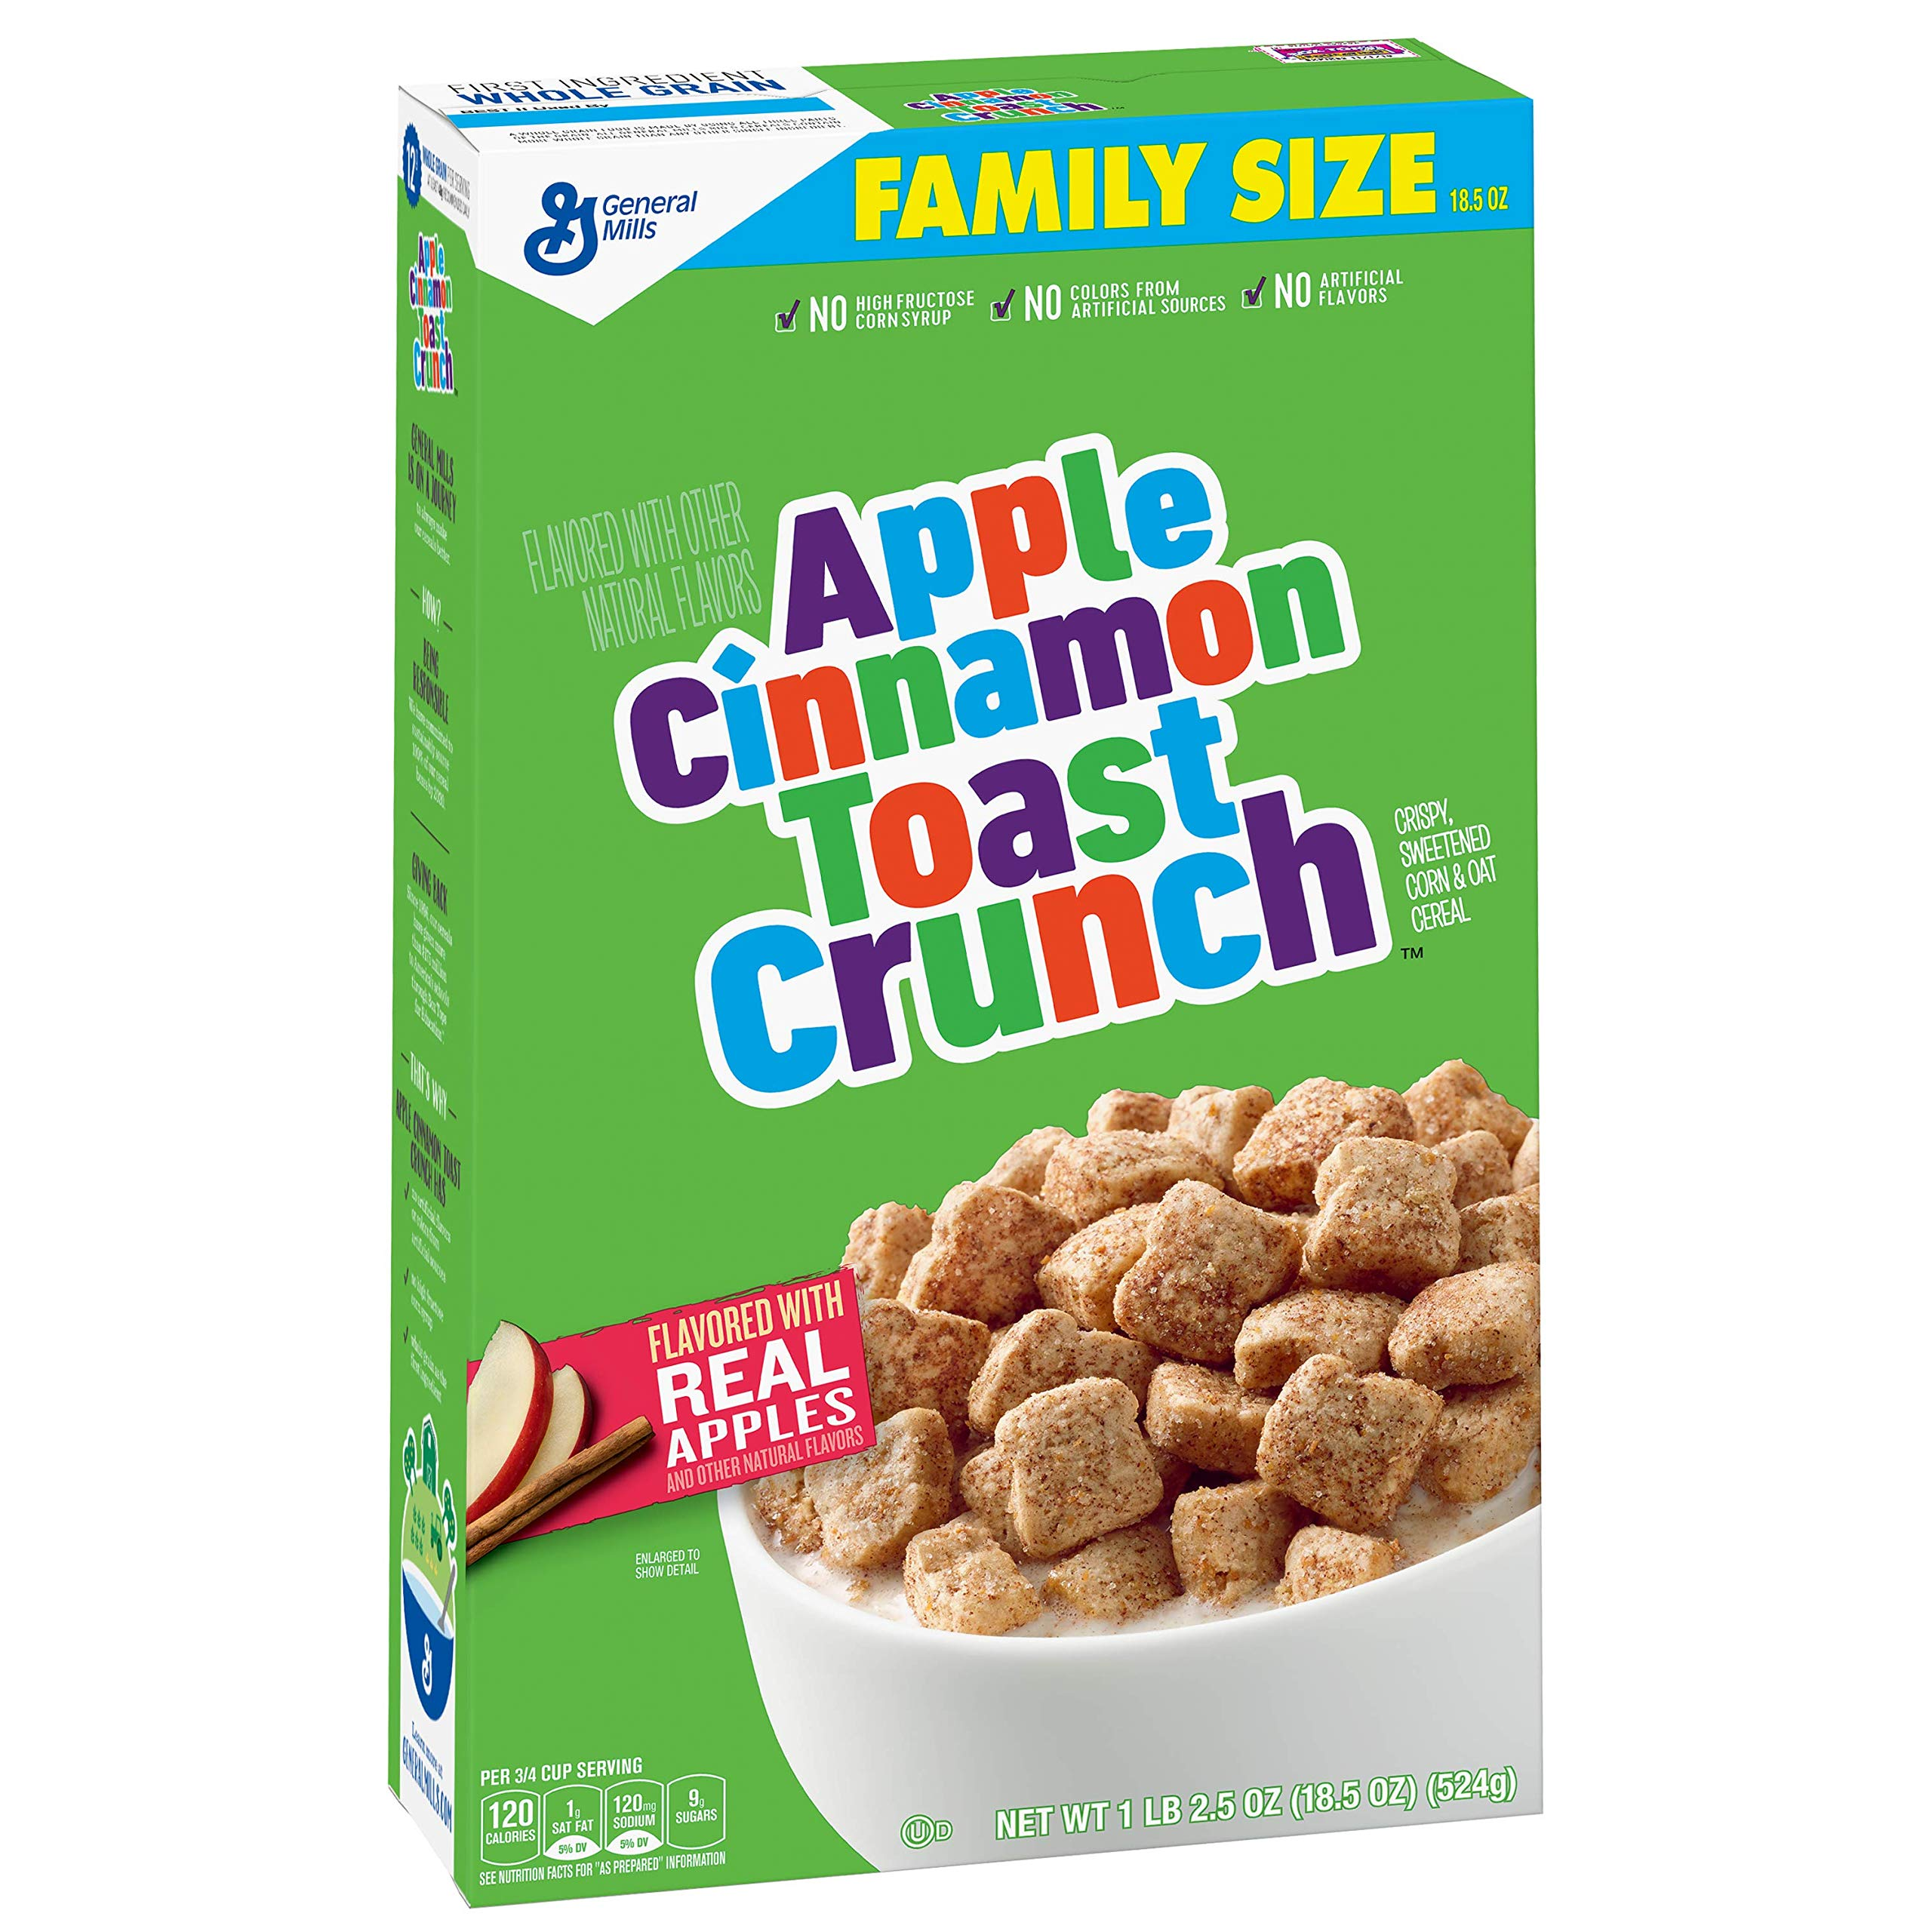 Amazon.com: Blueberry Toast Crunch Cereal, 18.25 Oz: